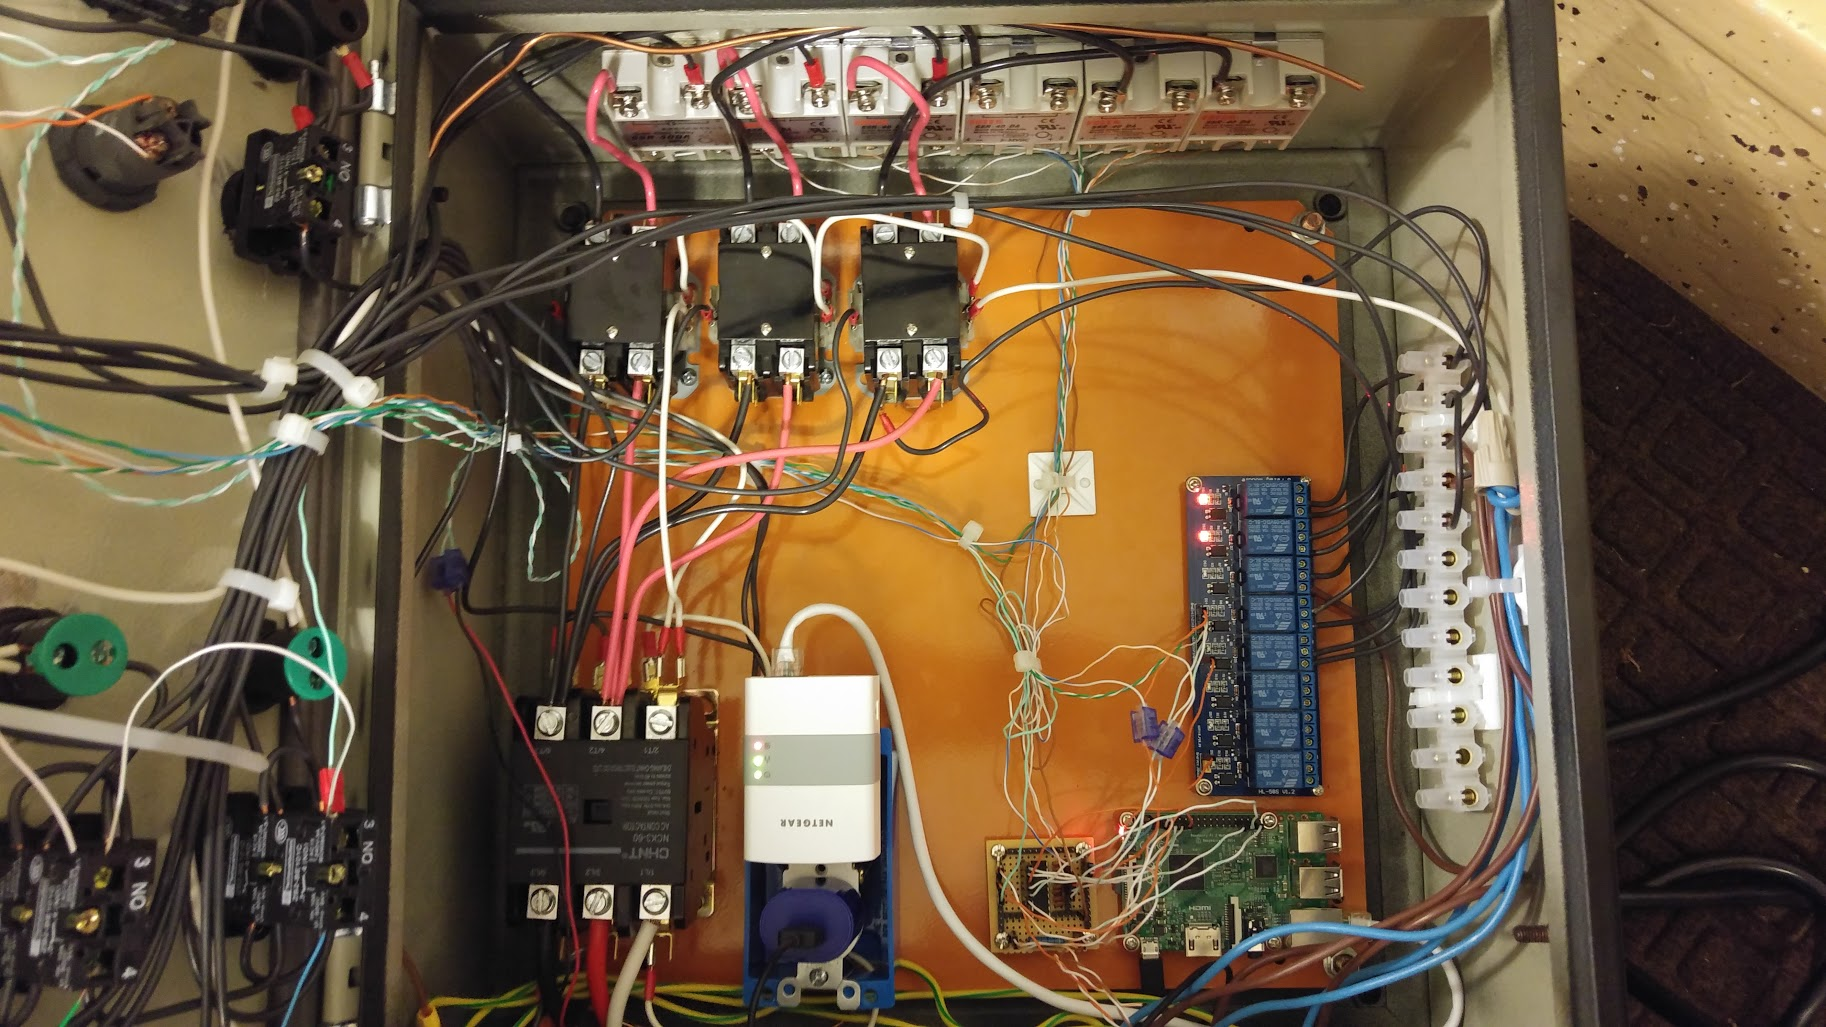 Building an electric brewery – Retirement Rocket Science on raspberry pi chassis, raspberry pi controls, raspberry pi tutorial, raspberry pi parts list, software wiring diagram, raspberry pi cabinet, raspberry pi gpio pinout, japan wiring diagram, raspberry pi door, raspberry pi gpio pins, electronics wiring diagram, apple wiring diagram, apache wiring diagram, raspberry pi solenoid, wifi wiring diagram, raspberry pi relay wiring, raspberry pi brochure, toshiba wiring diagram, raspberry pi revision 2 schematic, raspberry pi system,